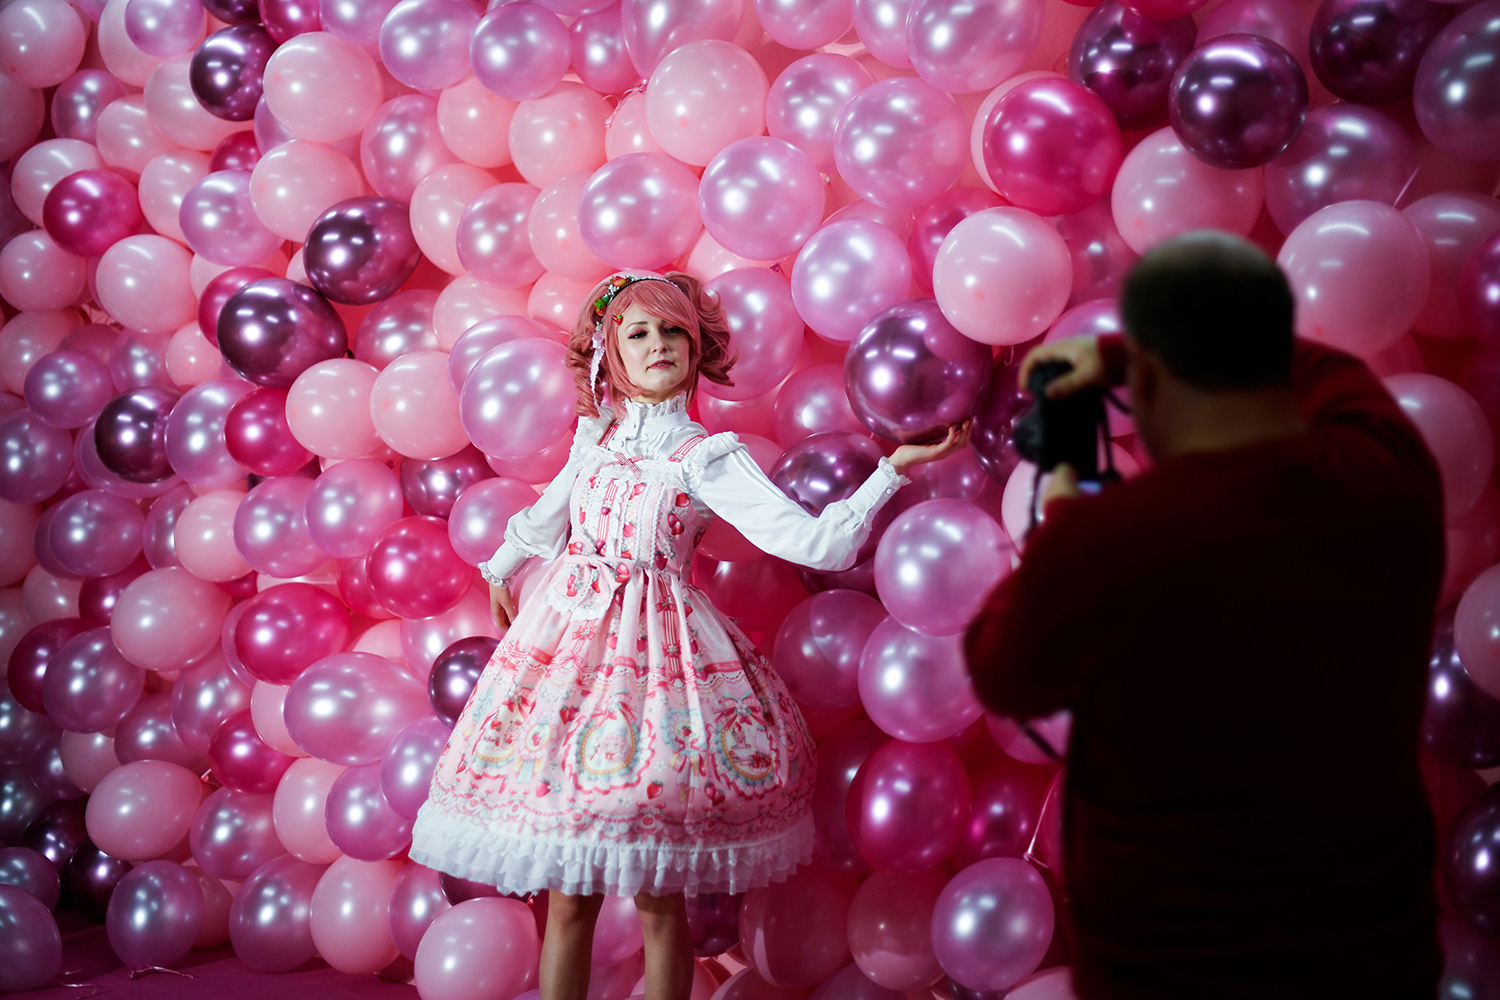 Instagram influencer Anmaykaa is photographed at the Supercandy Pop-Up Museum Vol. 2 in Cologne, western Germany, on Nov. 1. INA FASSBENDER/AFP via Getty Images